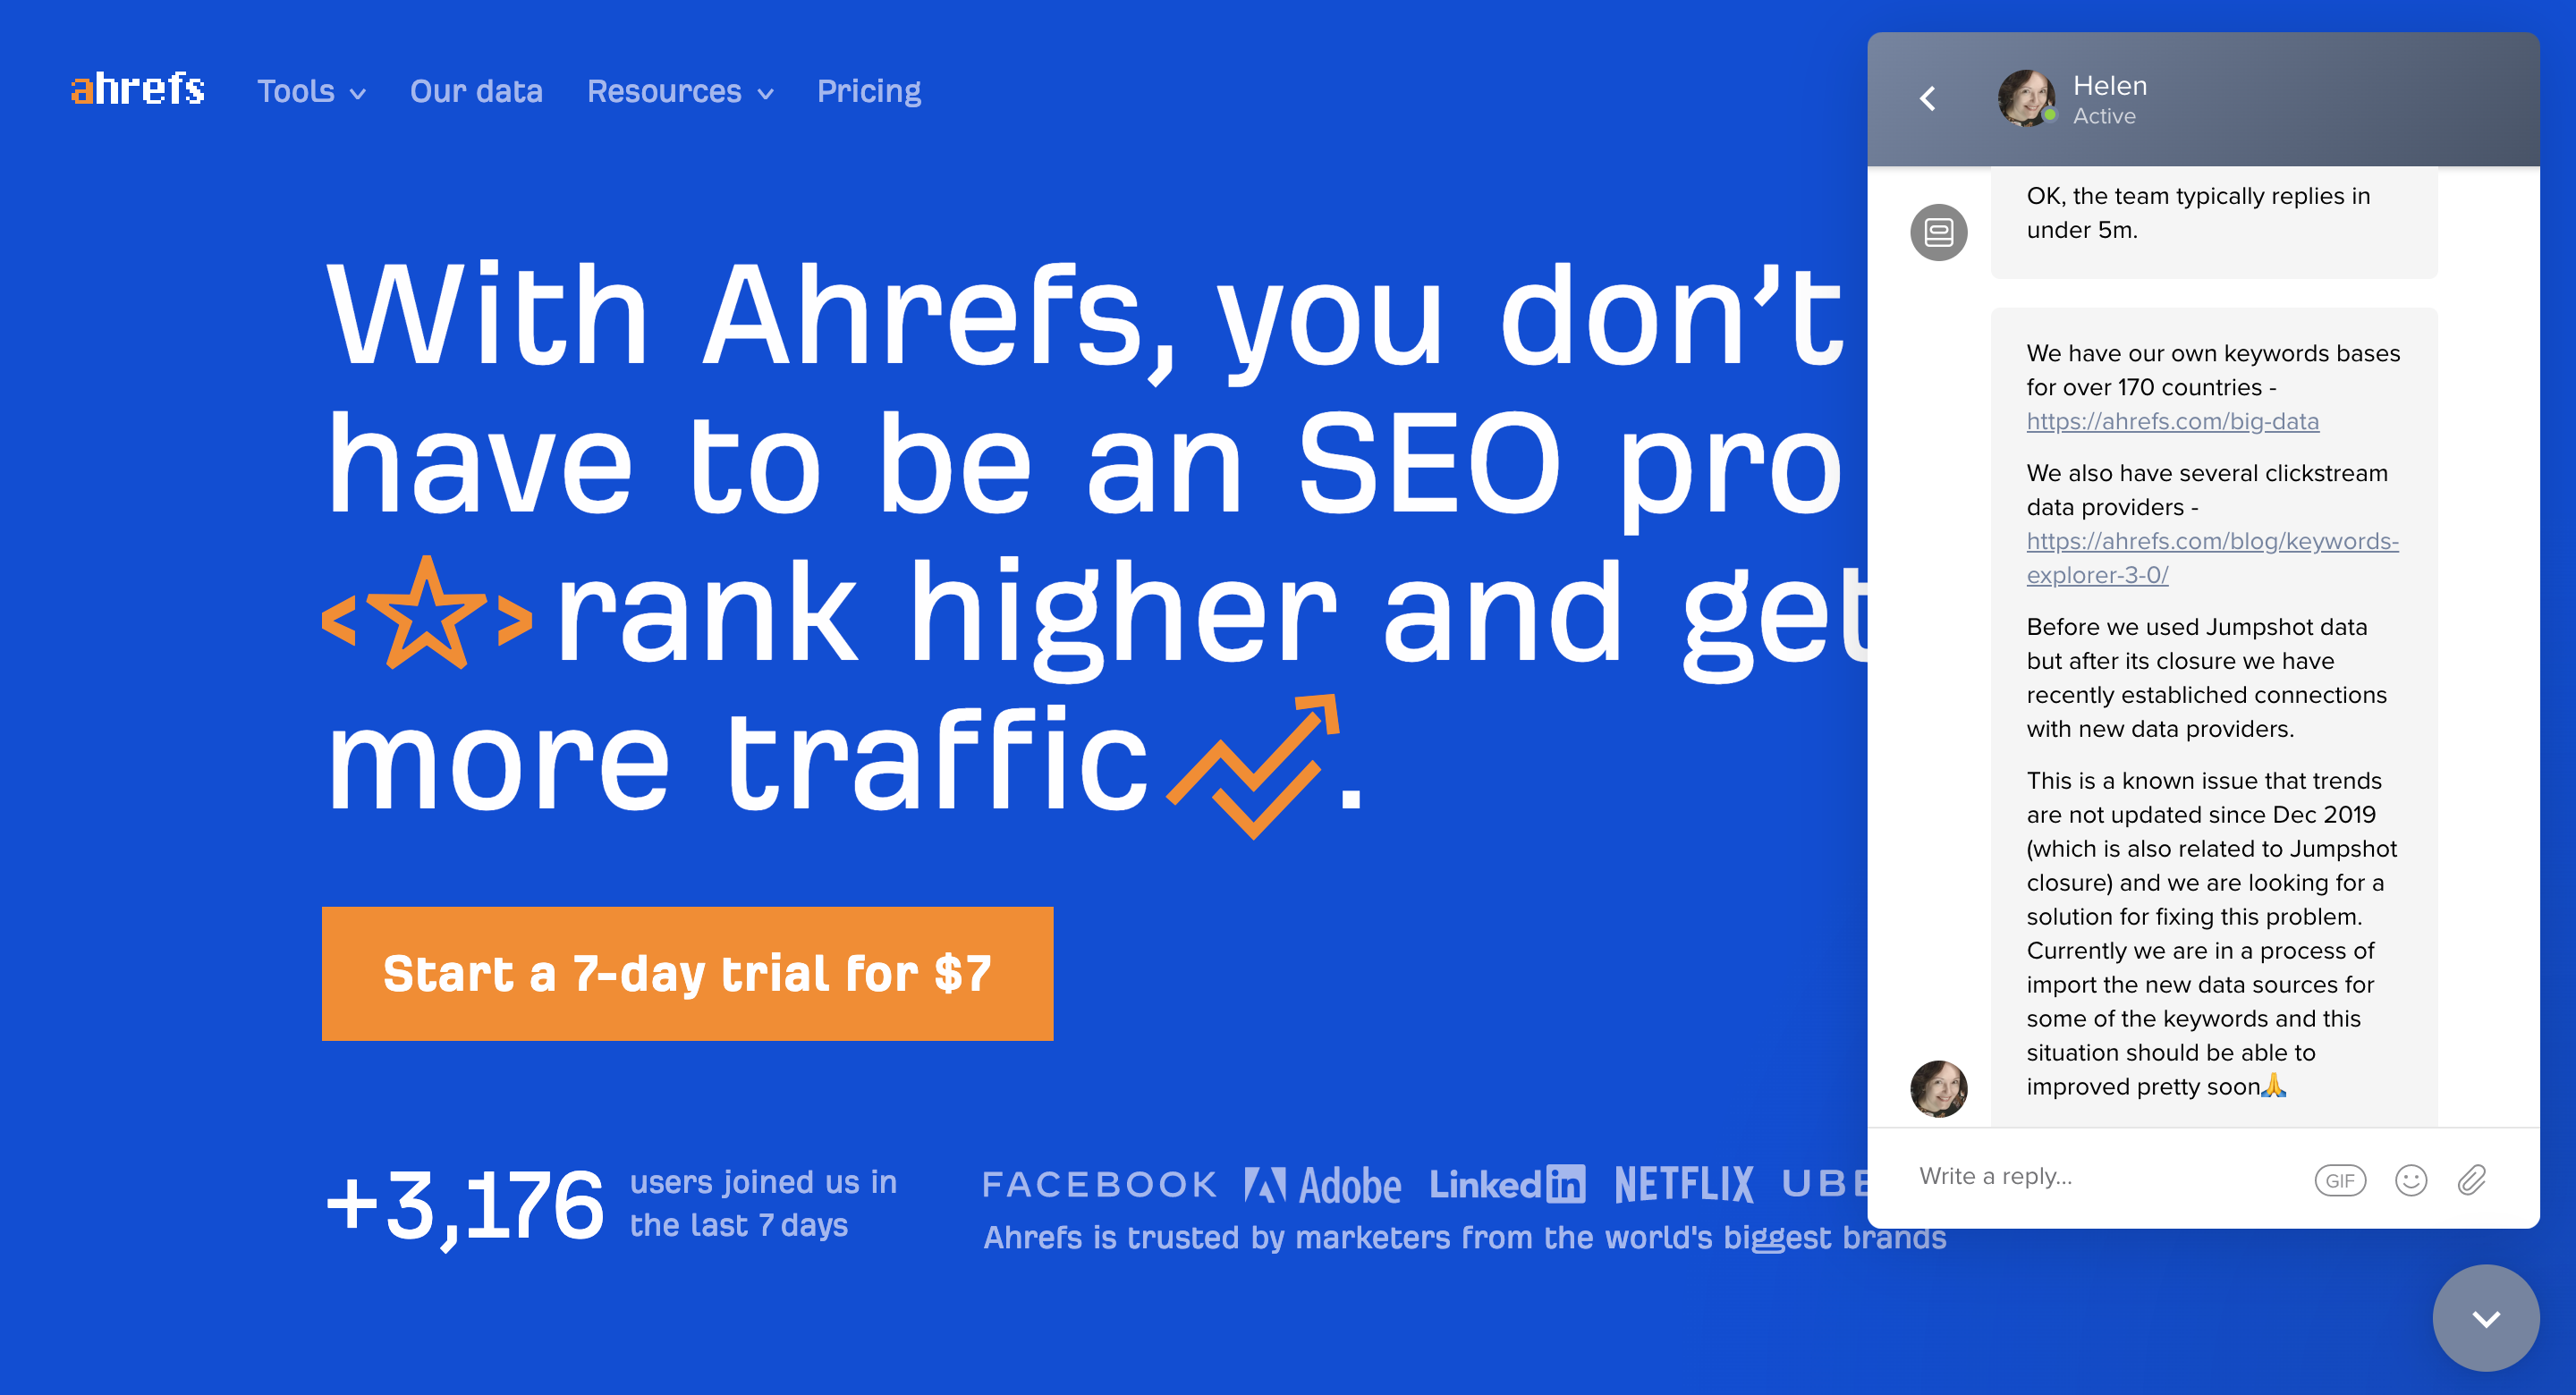 Ahrefs Customer Support